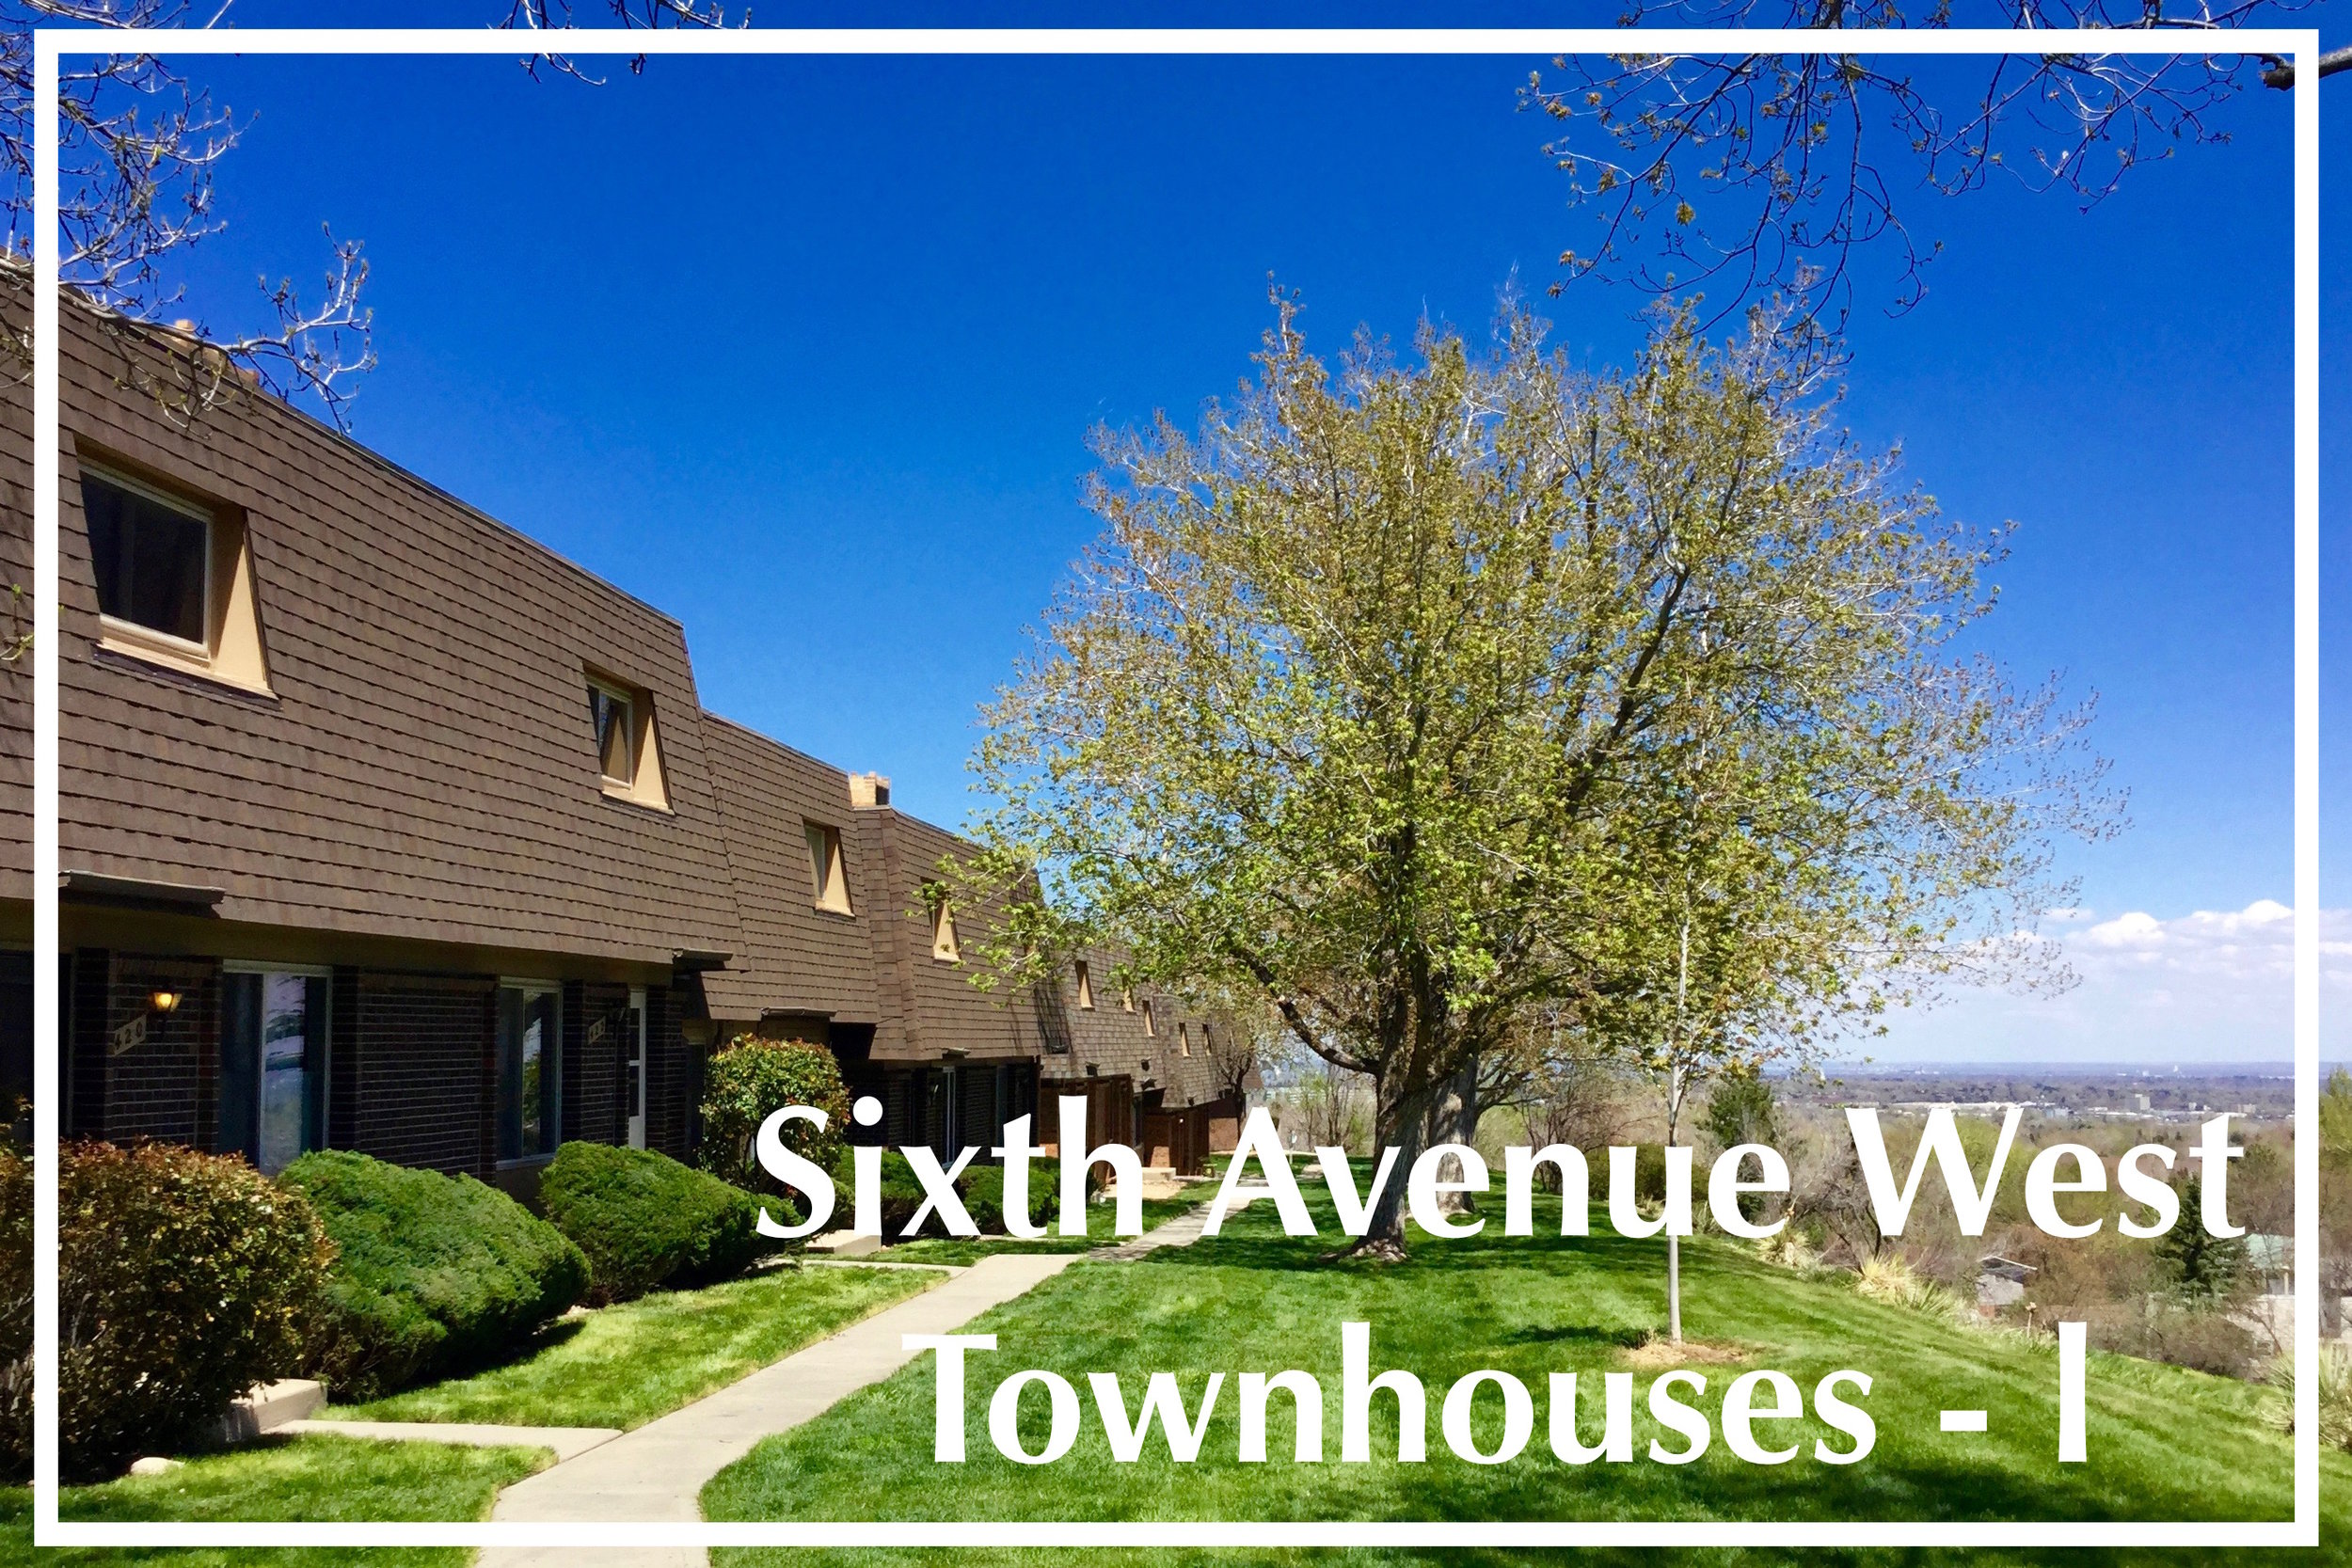 Sixth Avenue West Townhouses - One.jpg